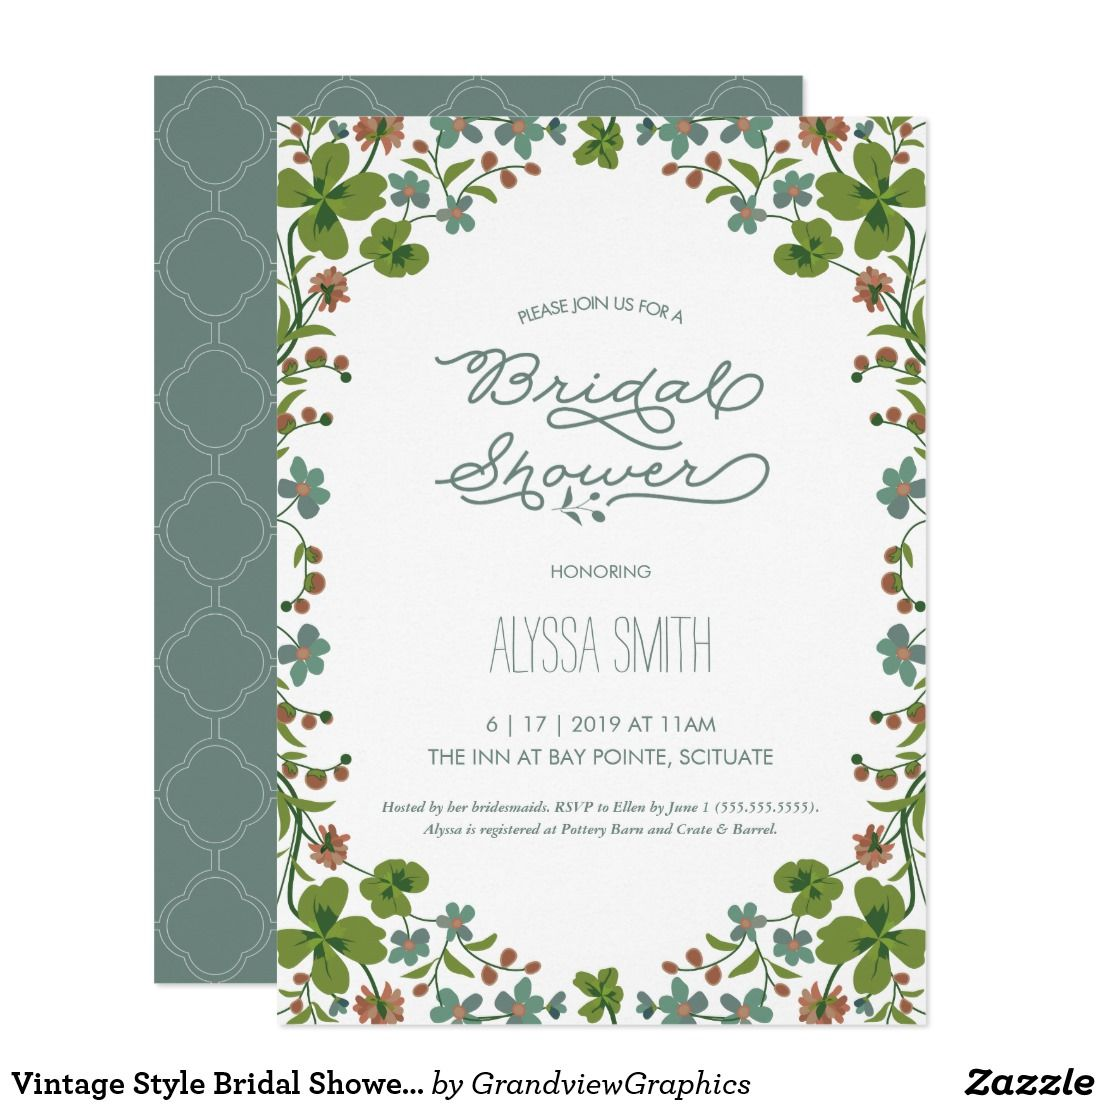 Vintage style bridal shower invite floral bridal showers and vintage style bridal shower invite floral filmwisefo Image collections